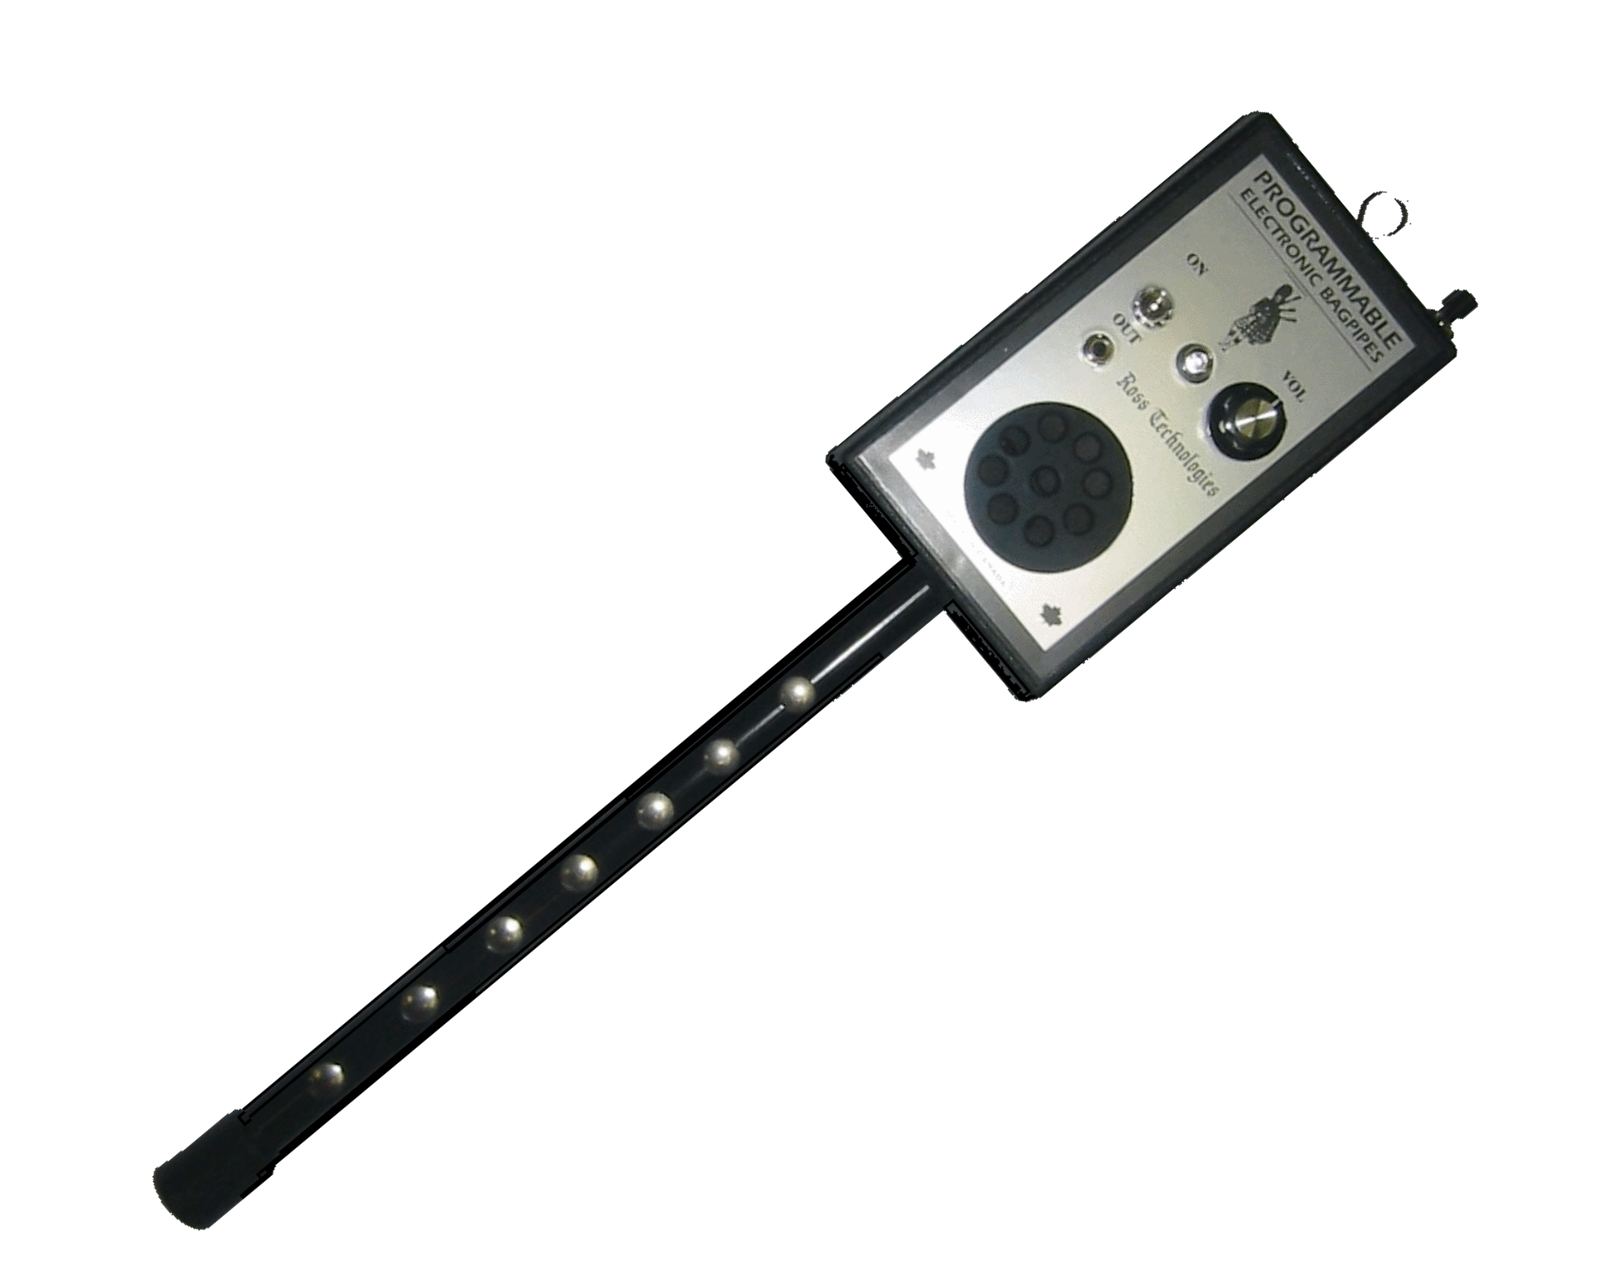 Original Style Ross Technologies Electronic Bagpipes